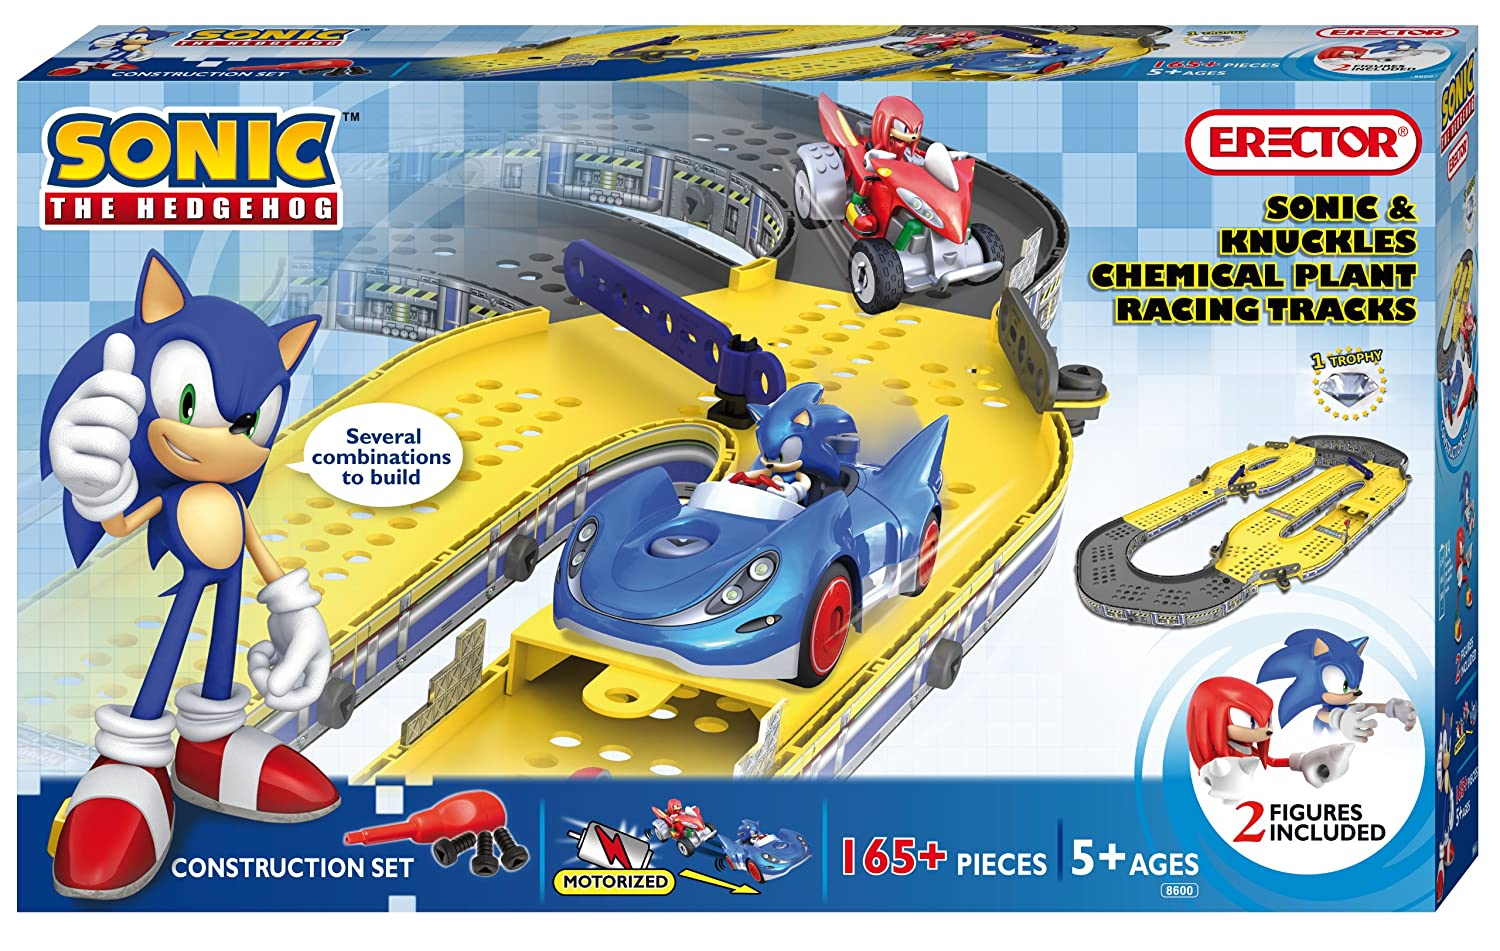 Amazoncom Erector Sonic The Hedgehog Sonic and Knuckles Chemical